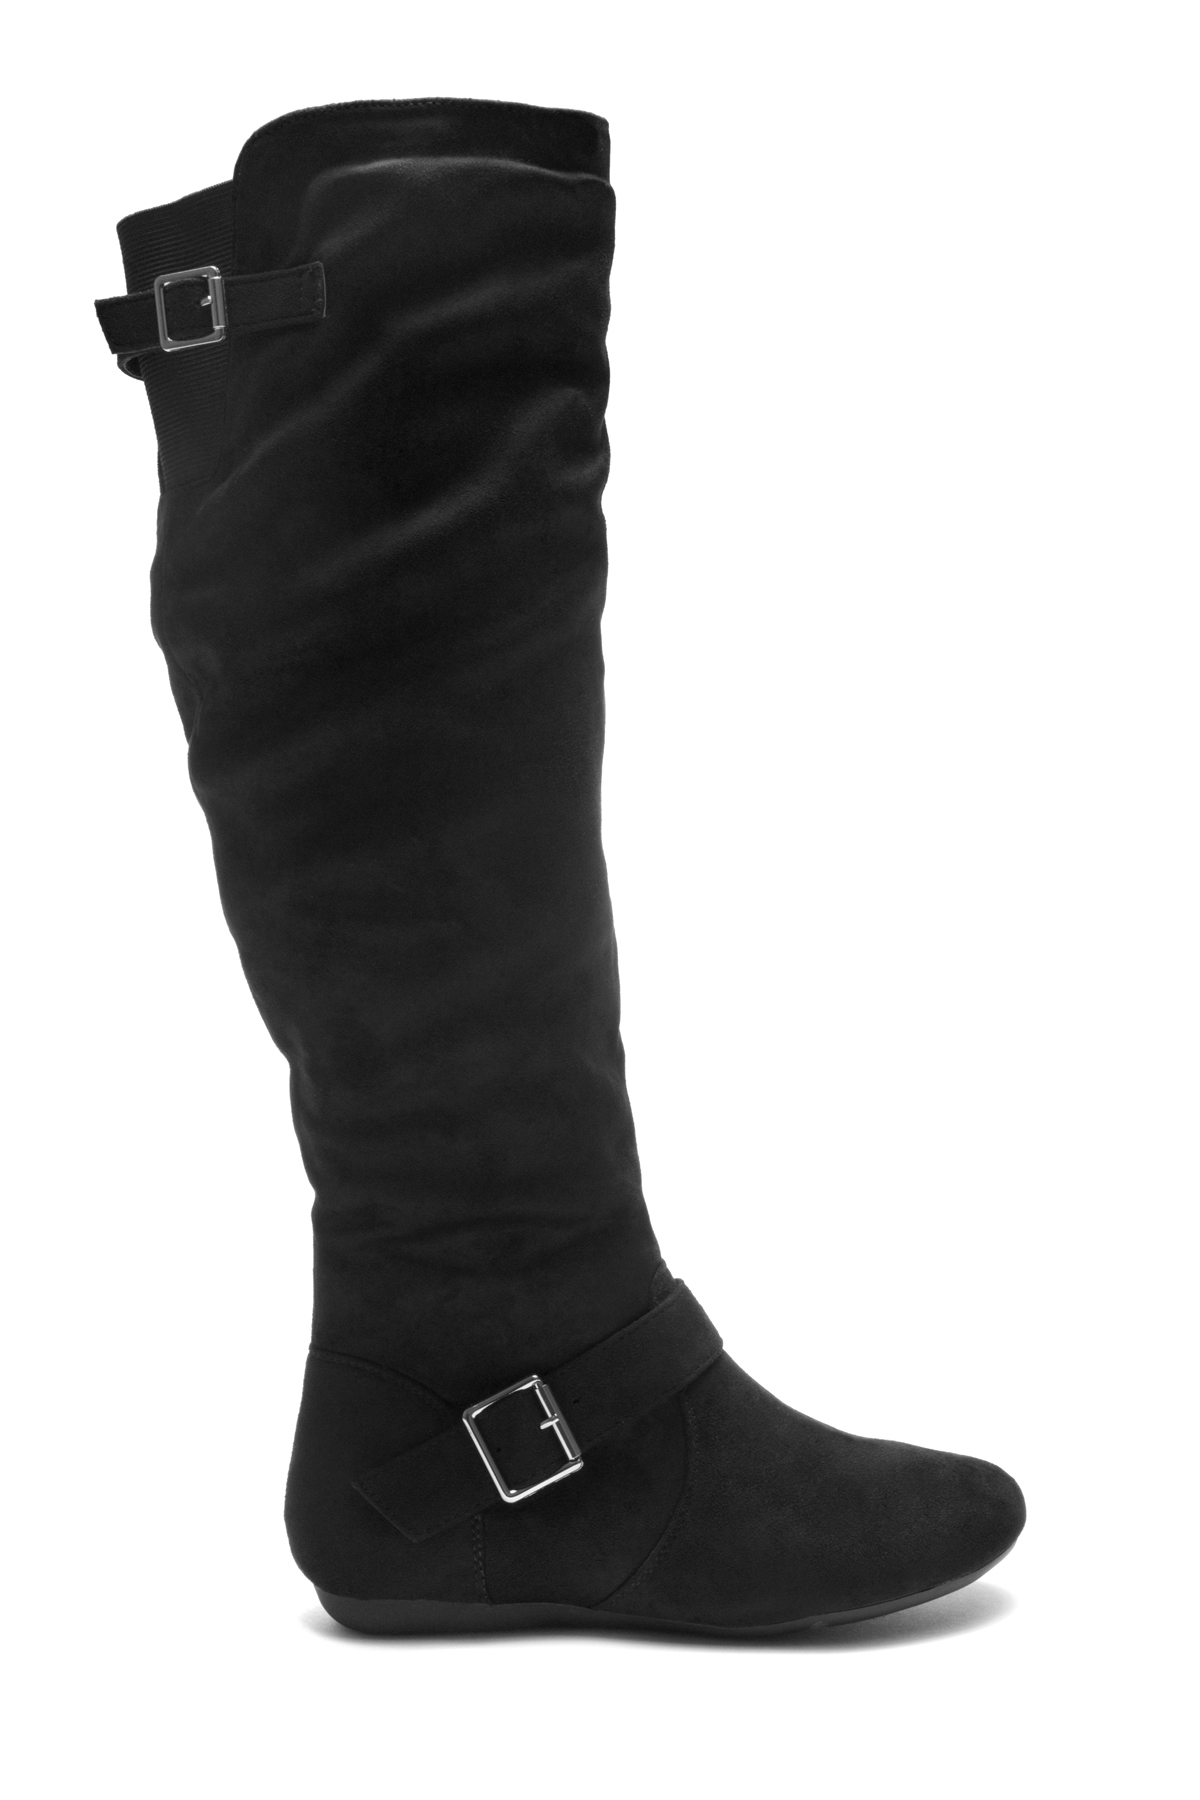 36caa1ebe6ea HerStyle Ieshia Thigh High Suede round toe flat boots (Black)